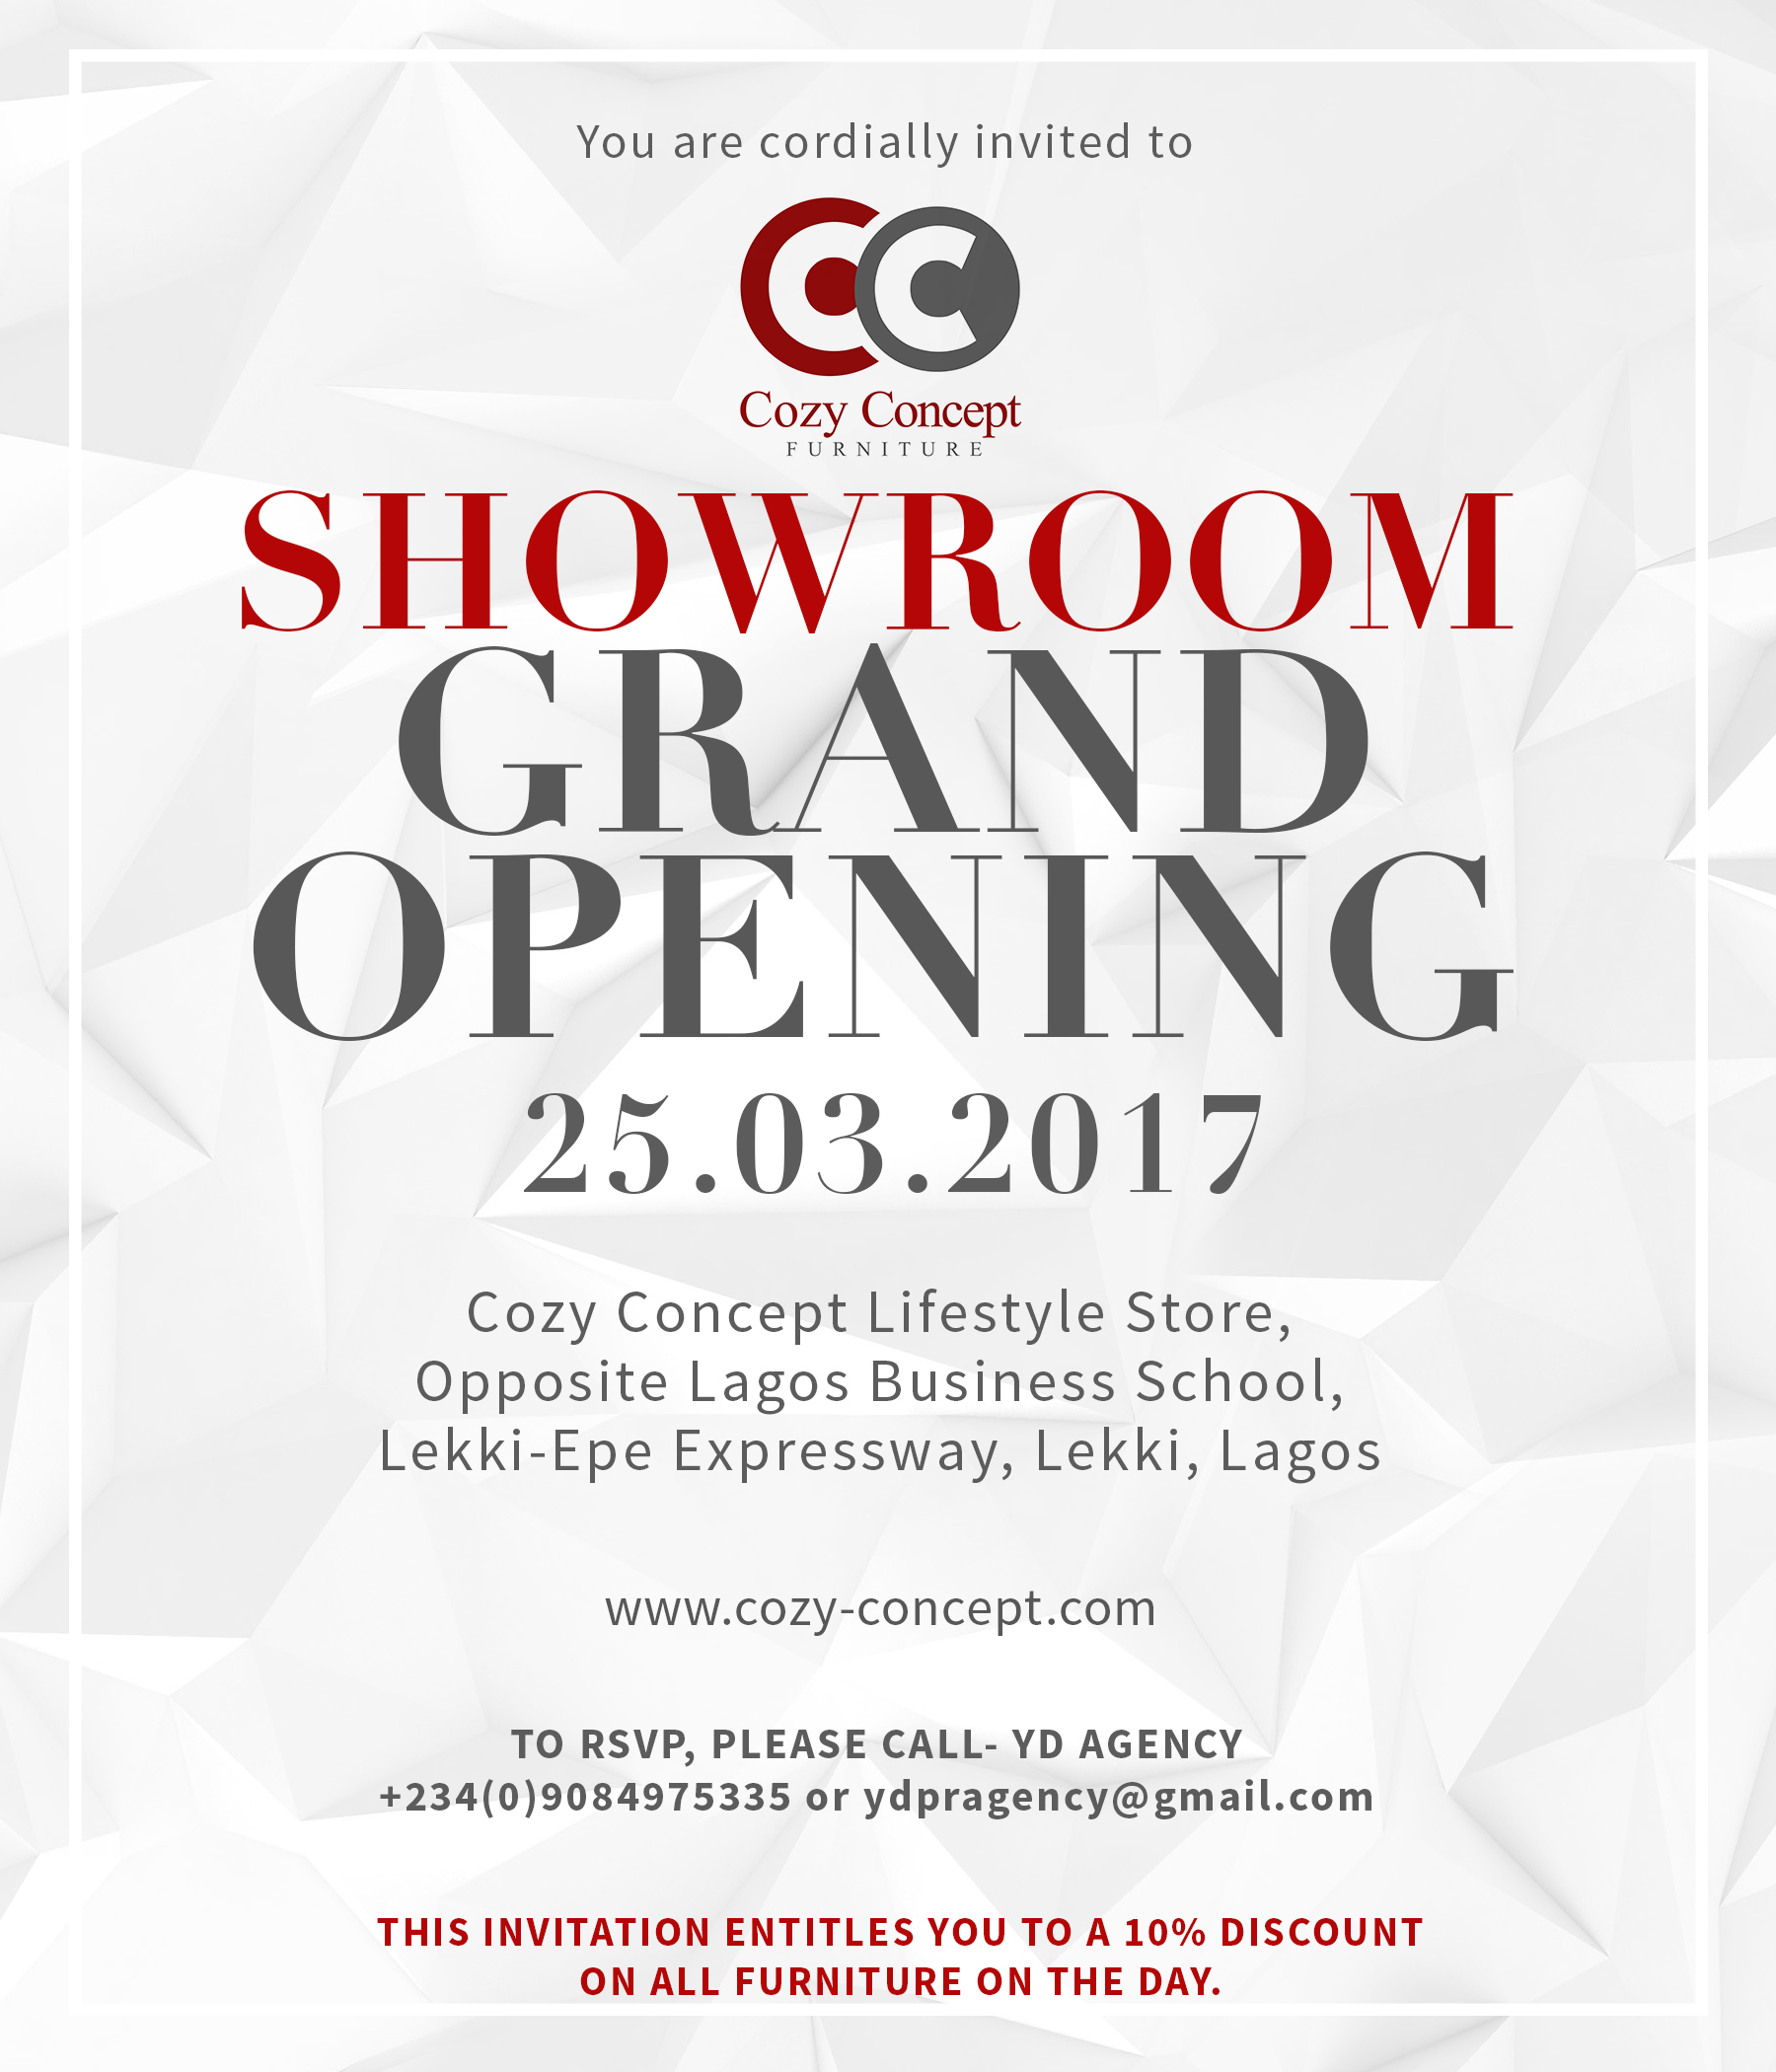 Cozy Concept Showroom Grand Opening Jagudacom